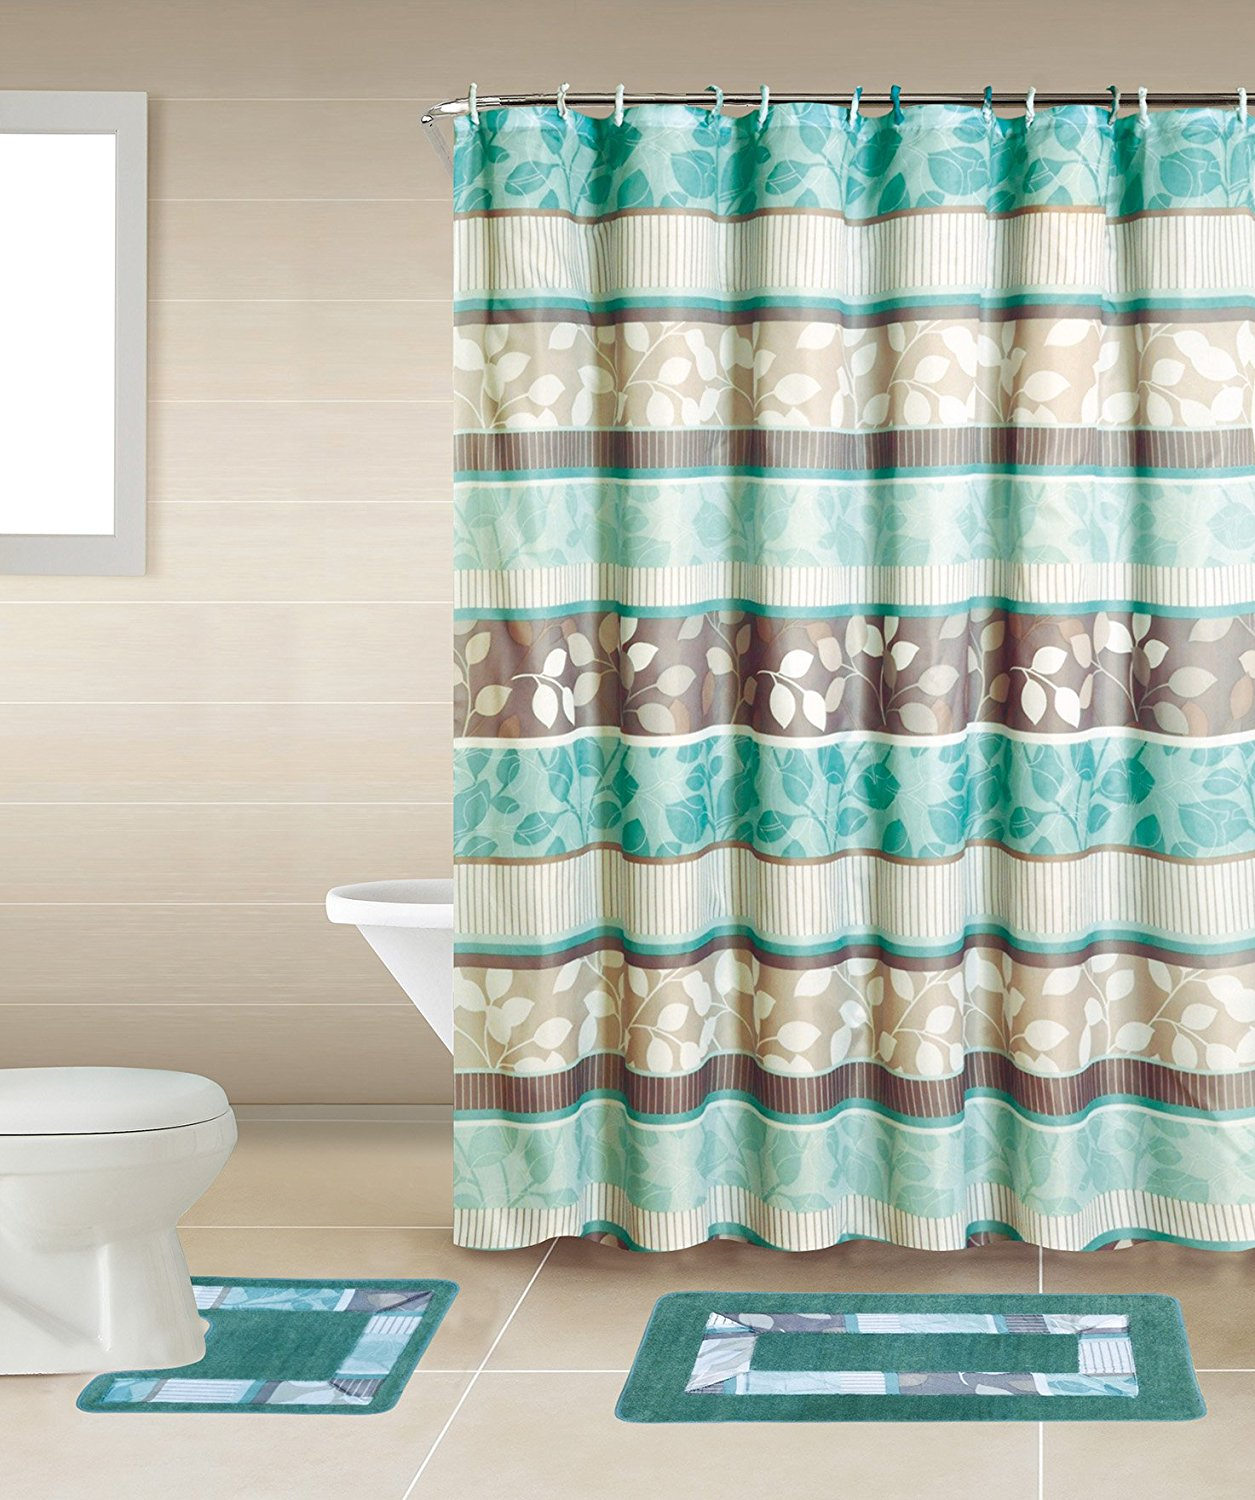 Charmant Zen Turquoise Blue U0026 Brown 15 Piece Bathroom Accessory Set: 2 Bath Mats,